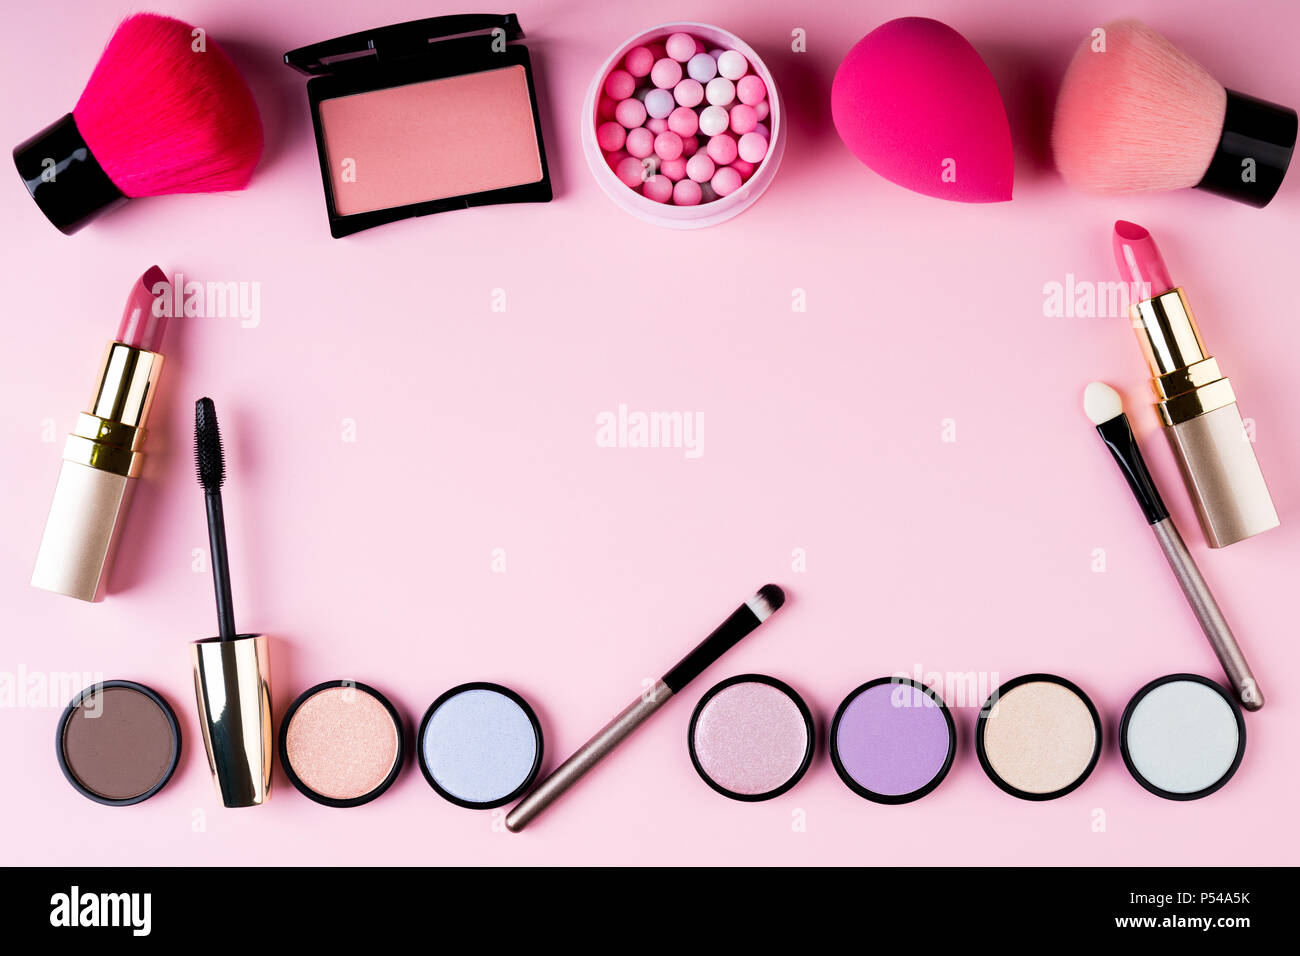 Frame of makeup products and decorative cosmetics on pink